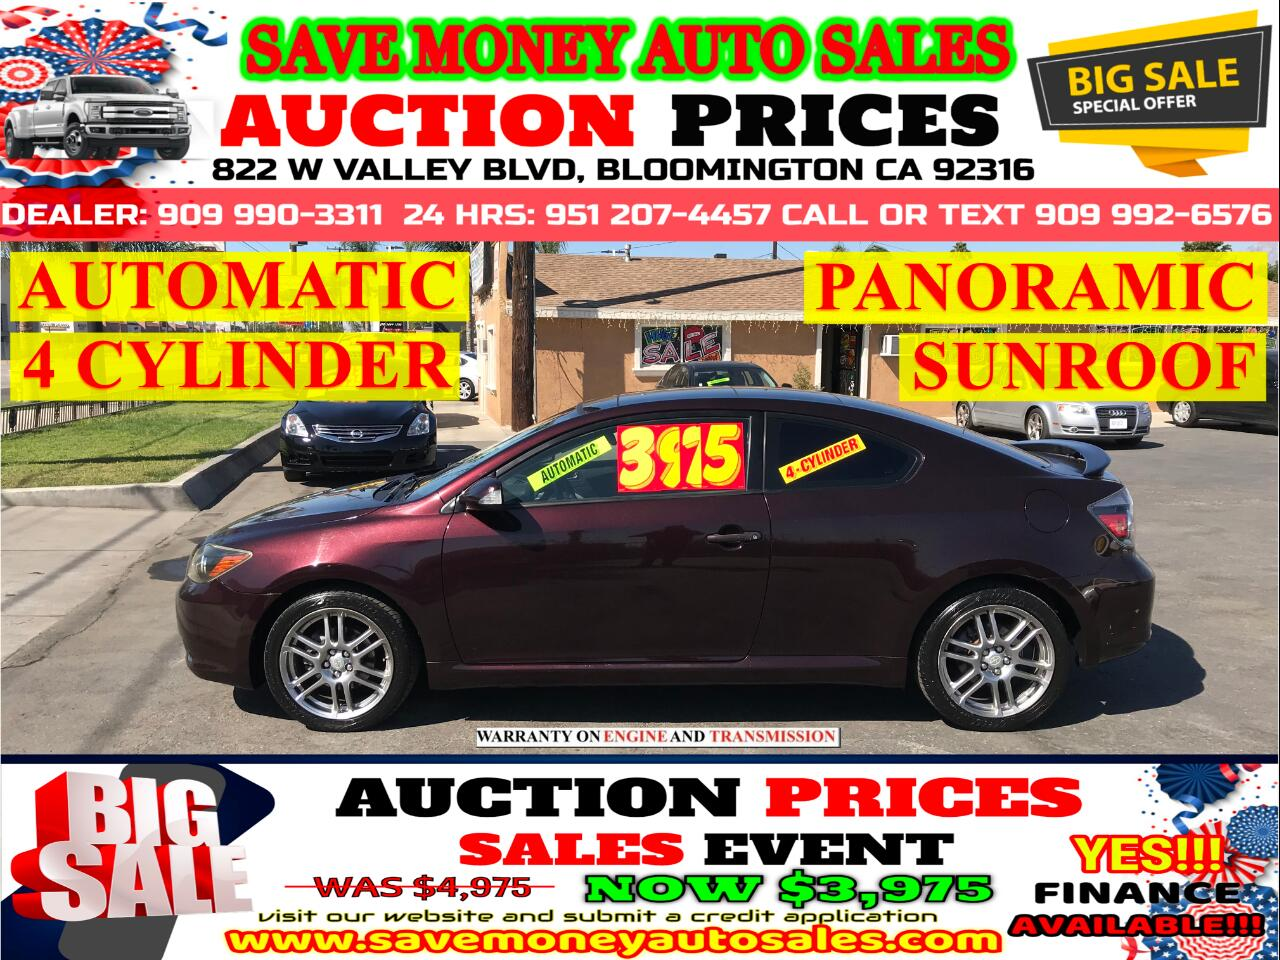 2008 Scion tC 4 CYLINDER> PANORAMIC SUN ROOF> AUTOMATIC